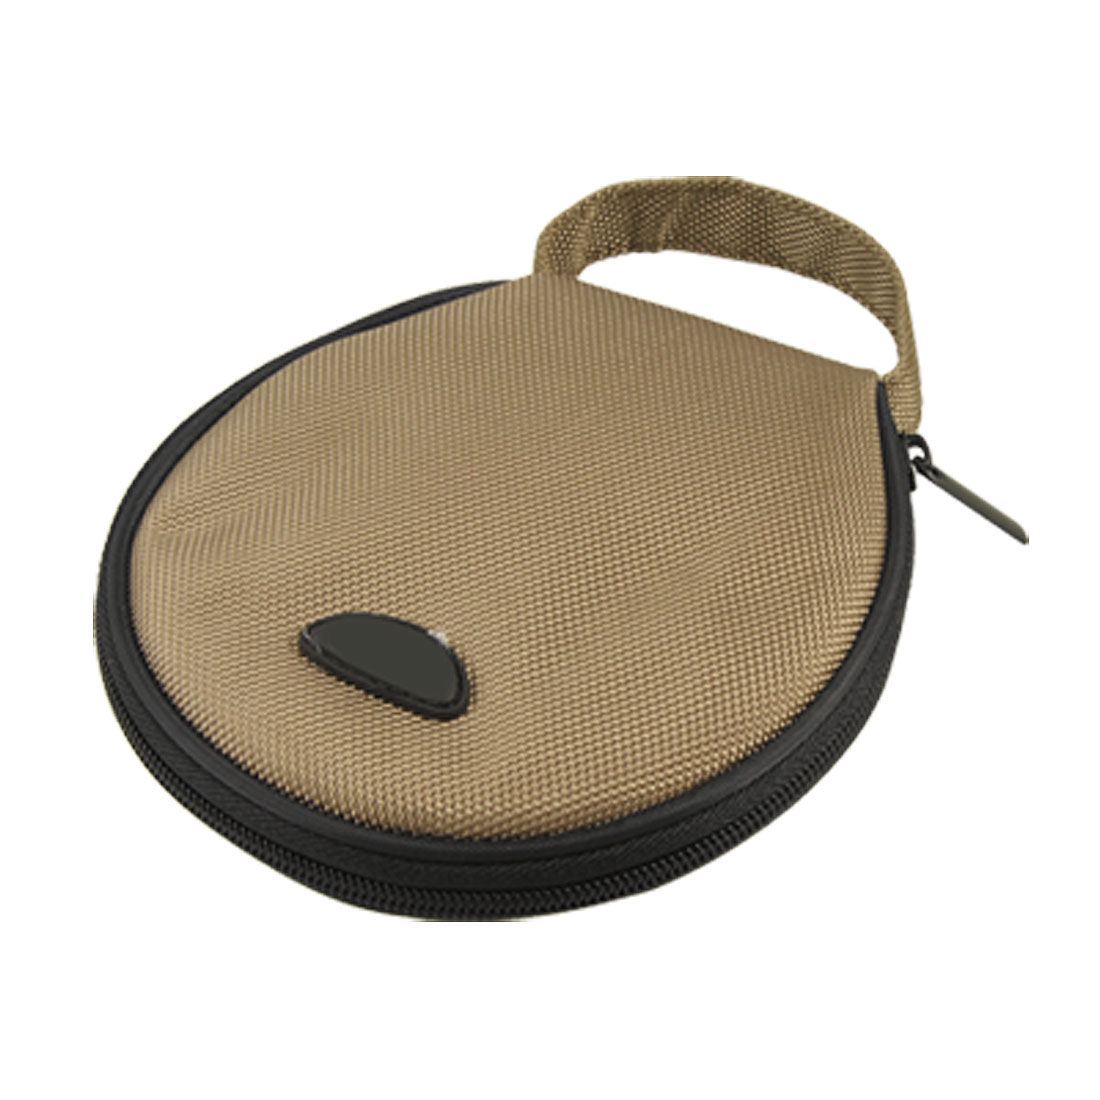 Unique Bargains 20 Disc Round Strap Design Nylon CD DVD Album Holder Bag Wallet Storage Case Organizer Brown